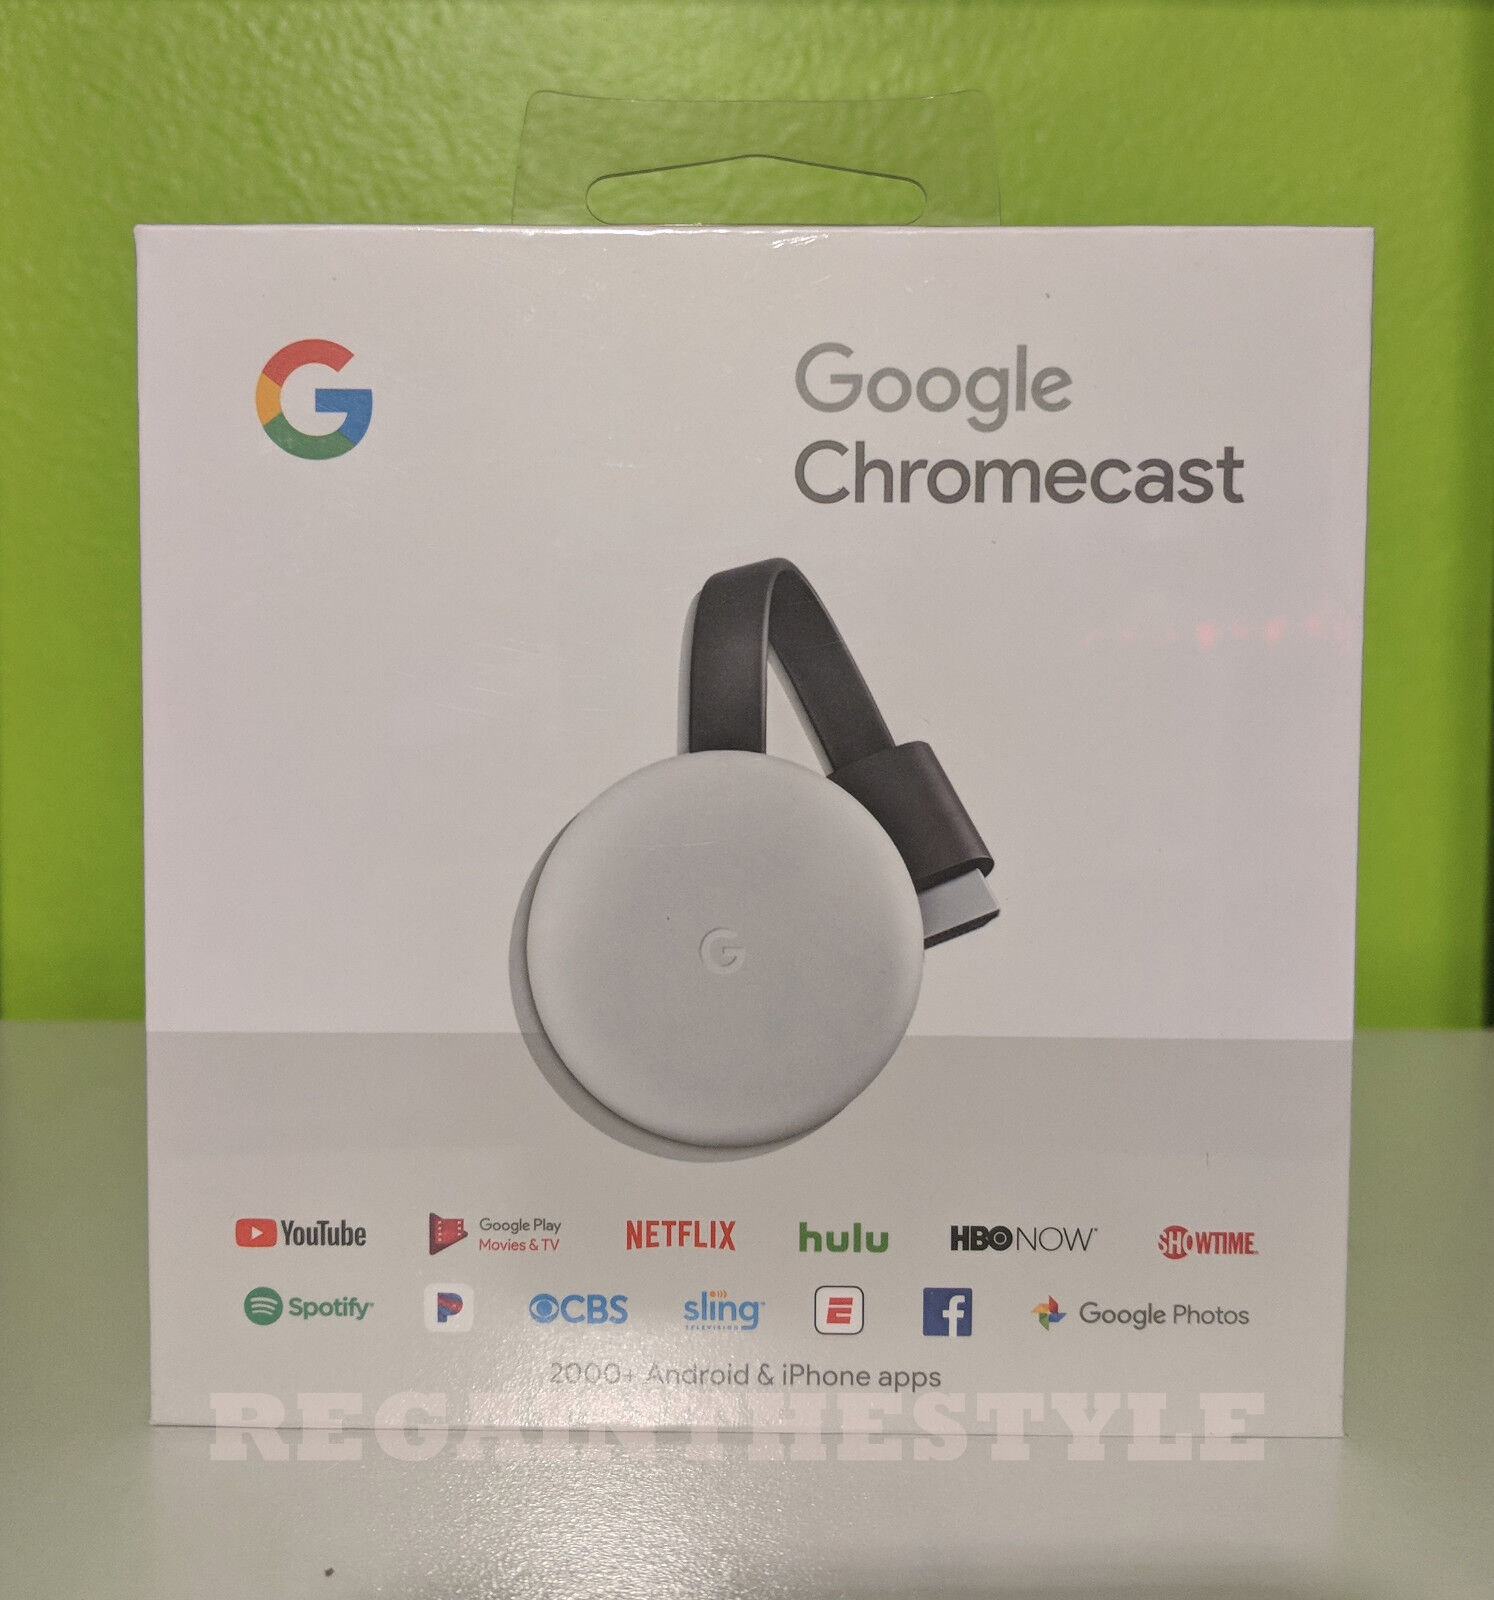 s-l1600 Google - Chromecast 3rd Generation Streaming Media Player - Chalk Grey